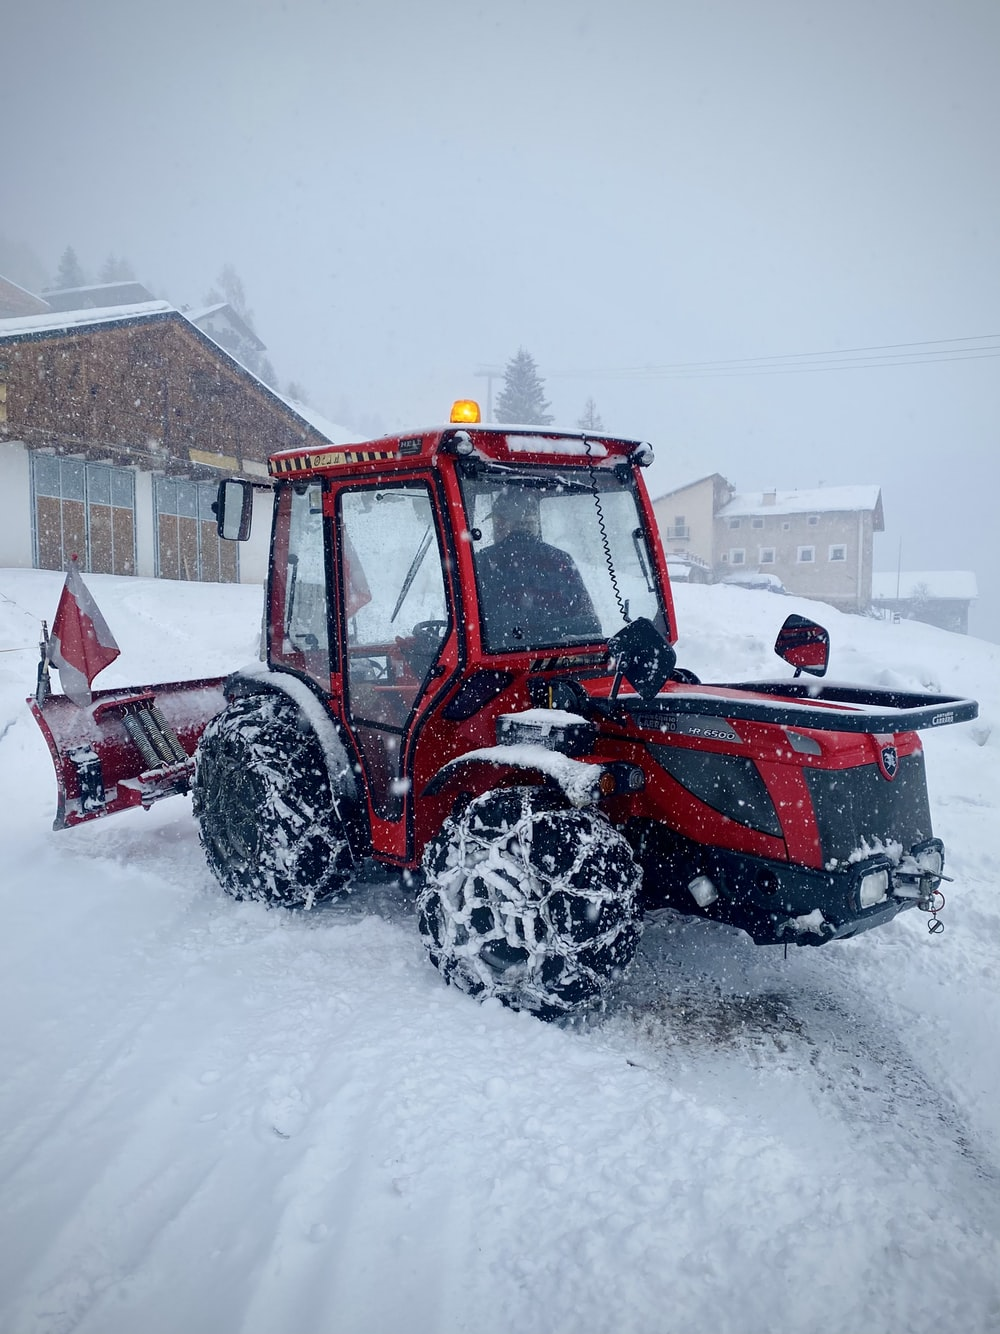 red and black tractor on snow covered ground during daytime